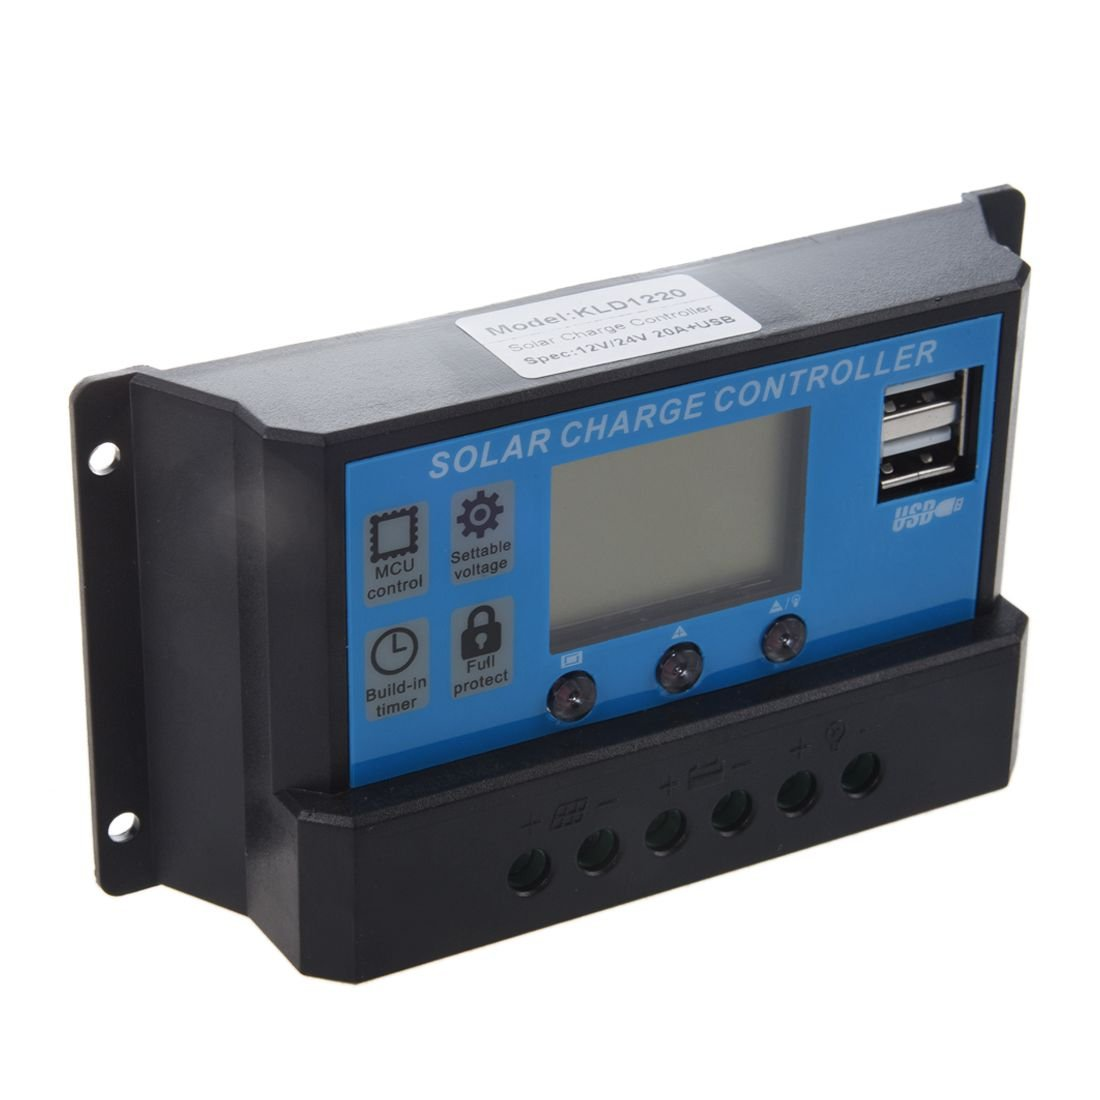 Solar charge controller - TOOGOO(R)Solar charge controller LCD 12V / 24V USB interface for solar module solar panel